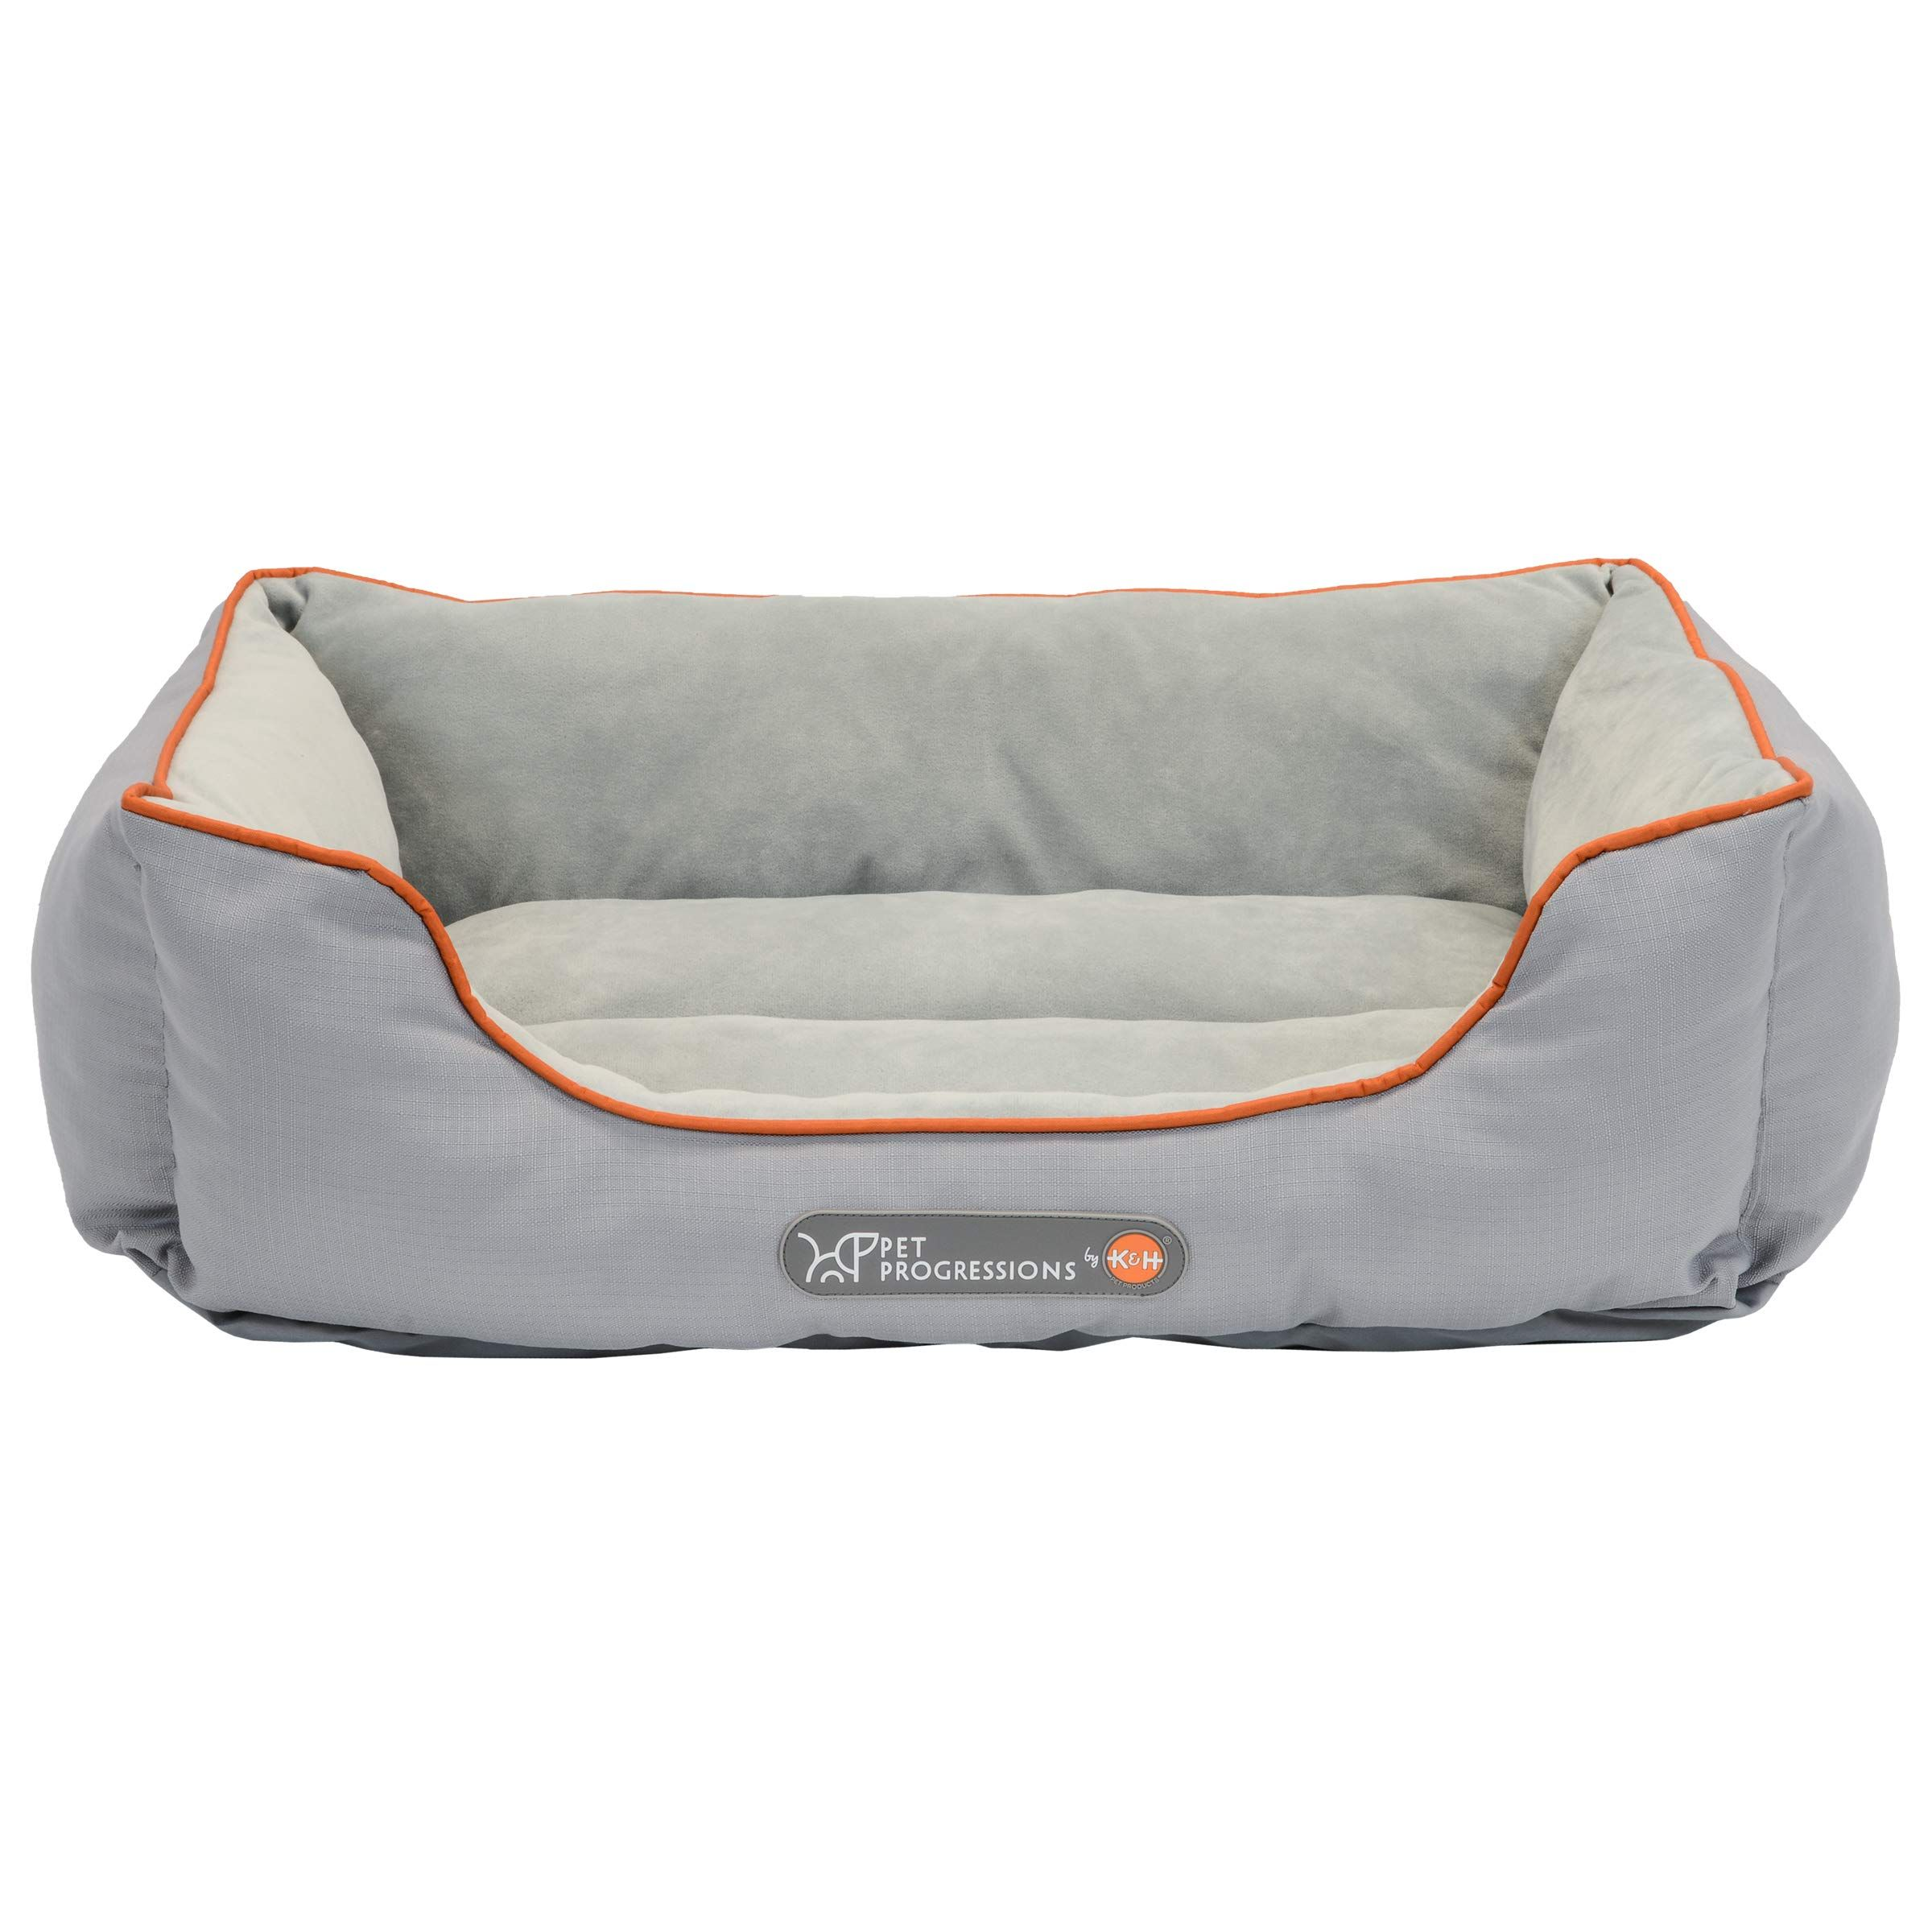 Pet Progressions By K Amp H Waterproof Puppy Bolster Pet Bed